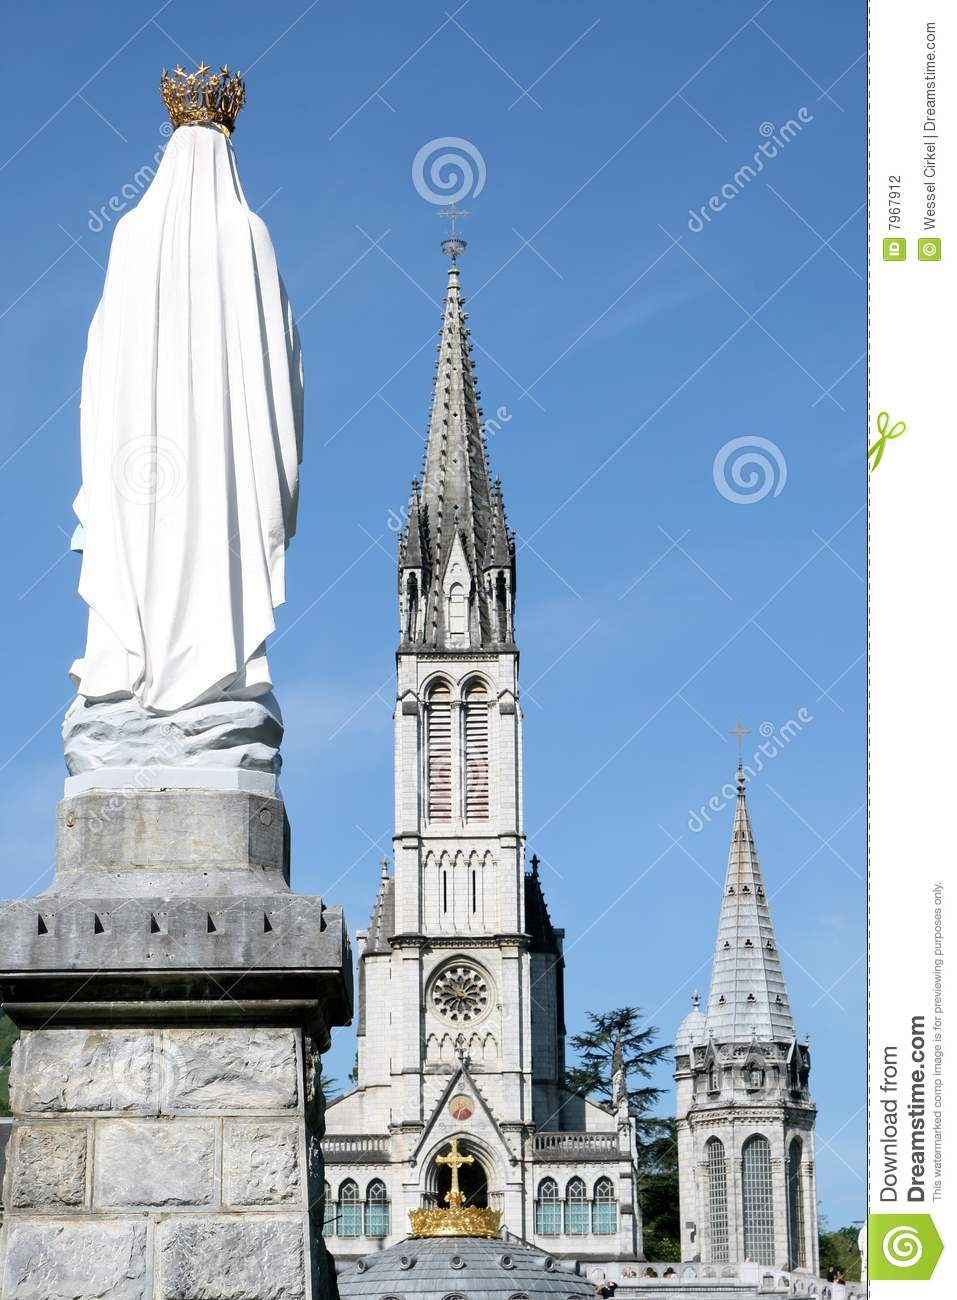 Virgin Mary And Basilica In Pilgrim Town Lourdes Stock Photography.